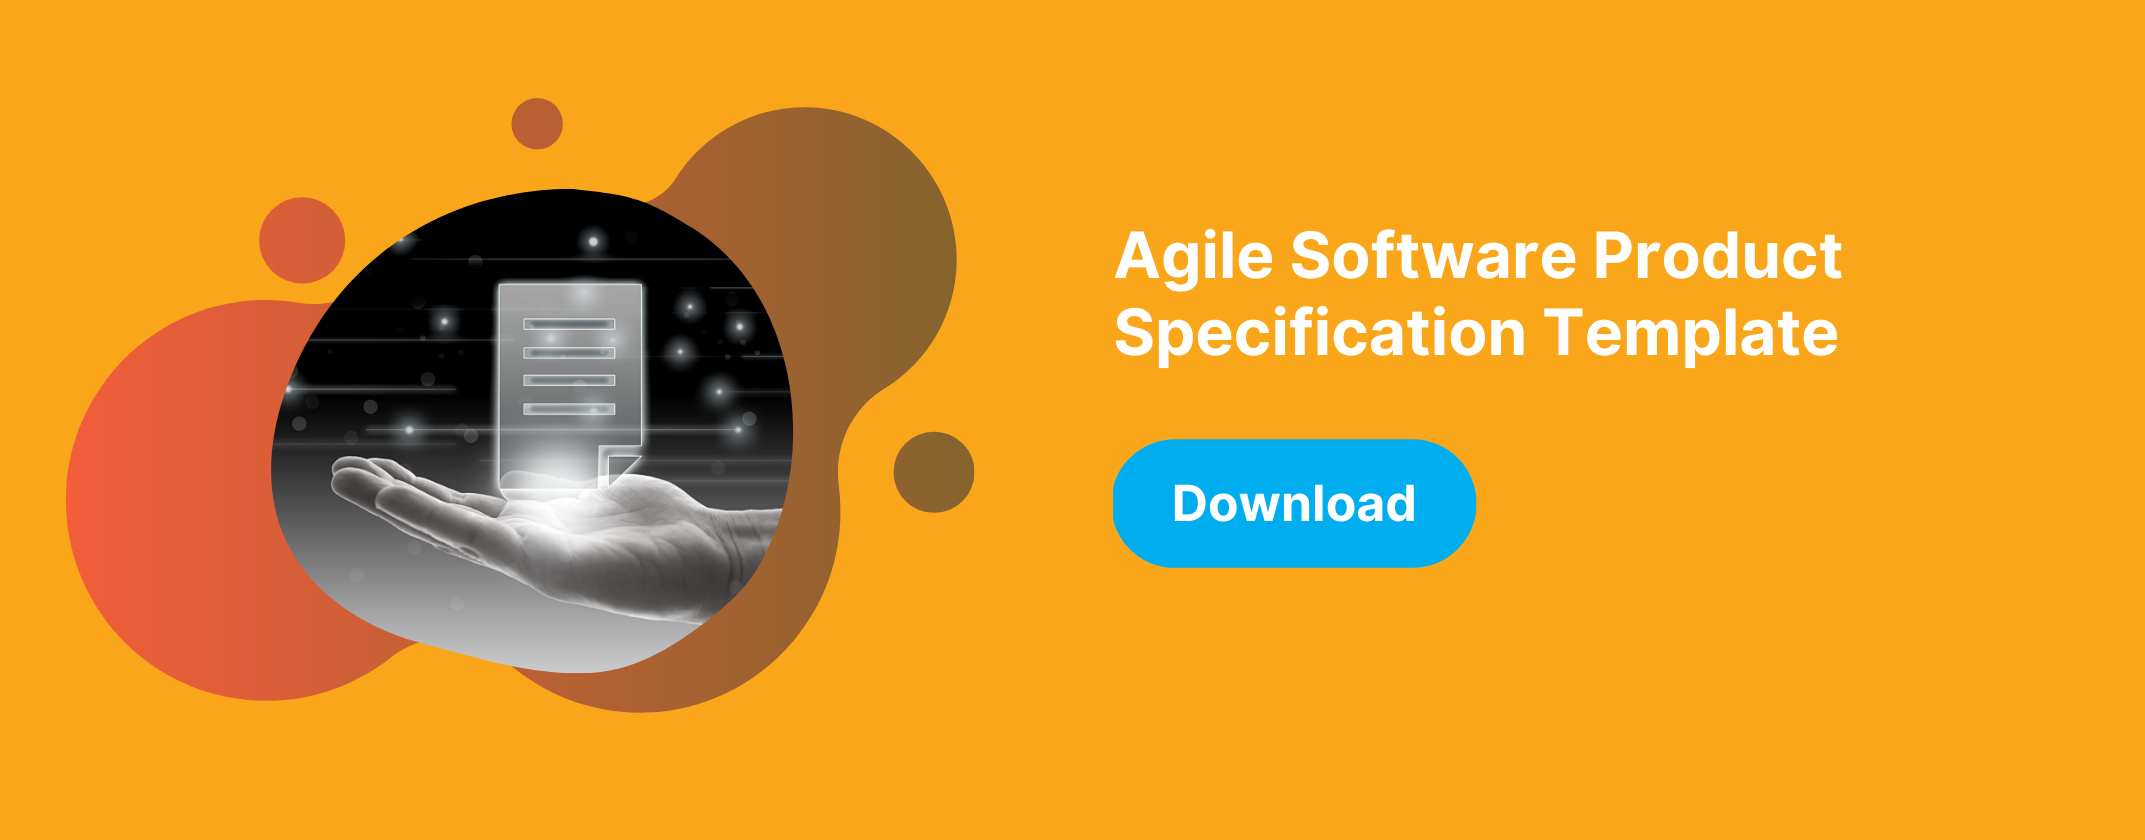 Download an Agile software product specification teamplate